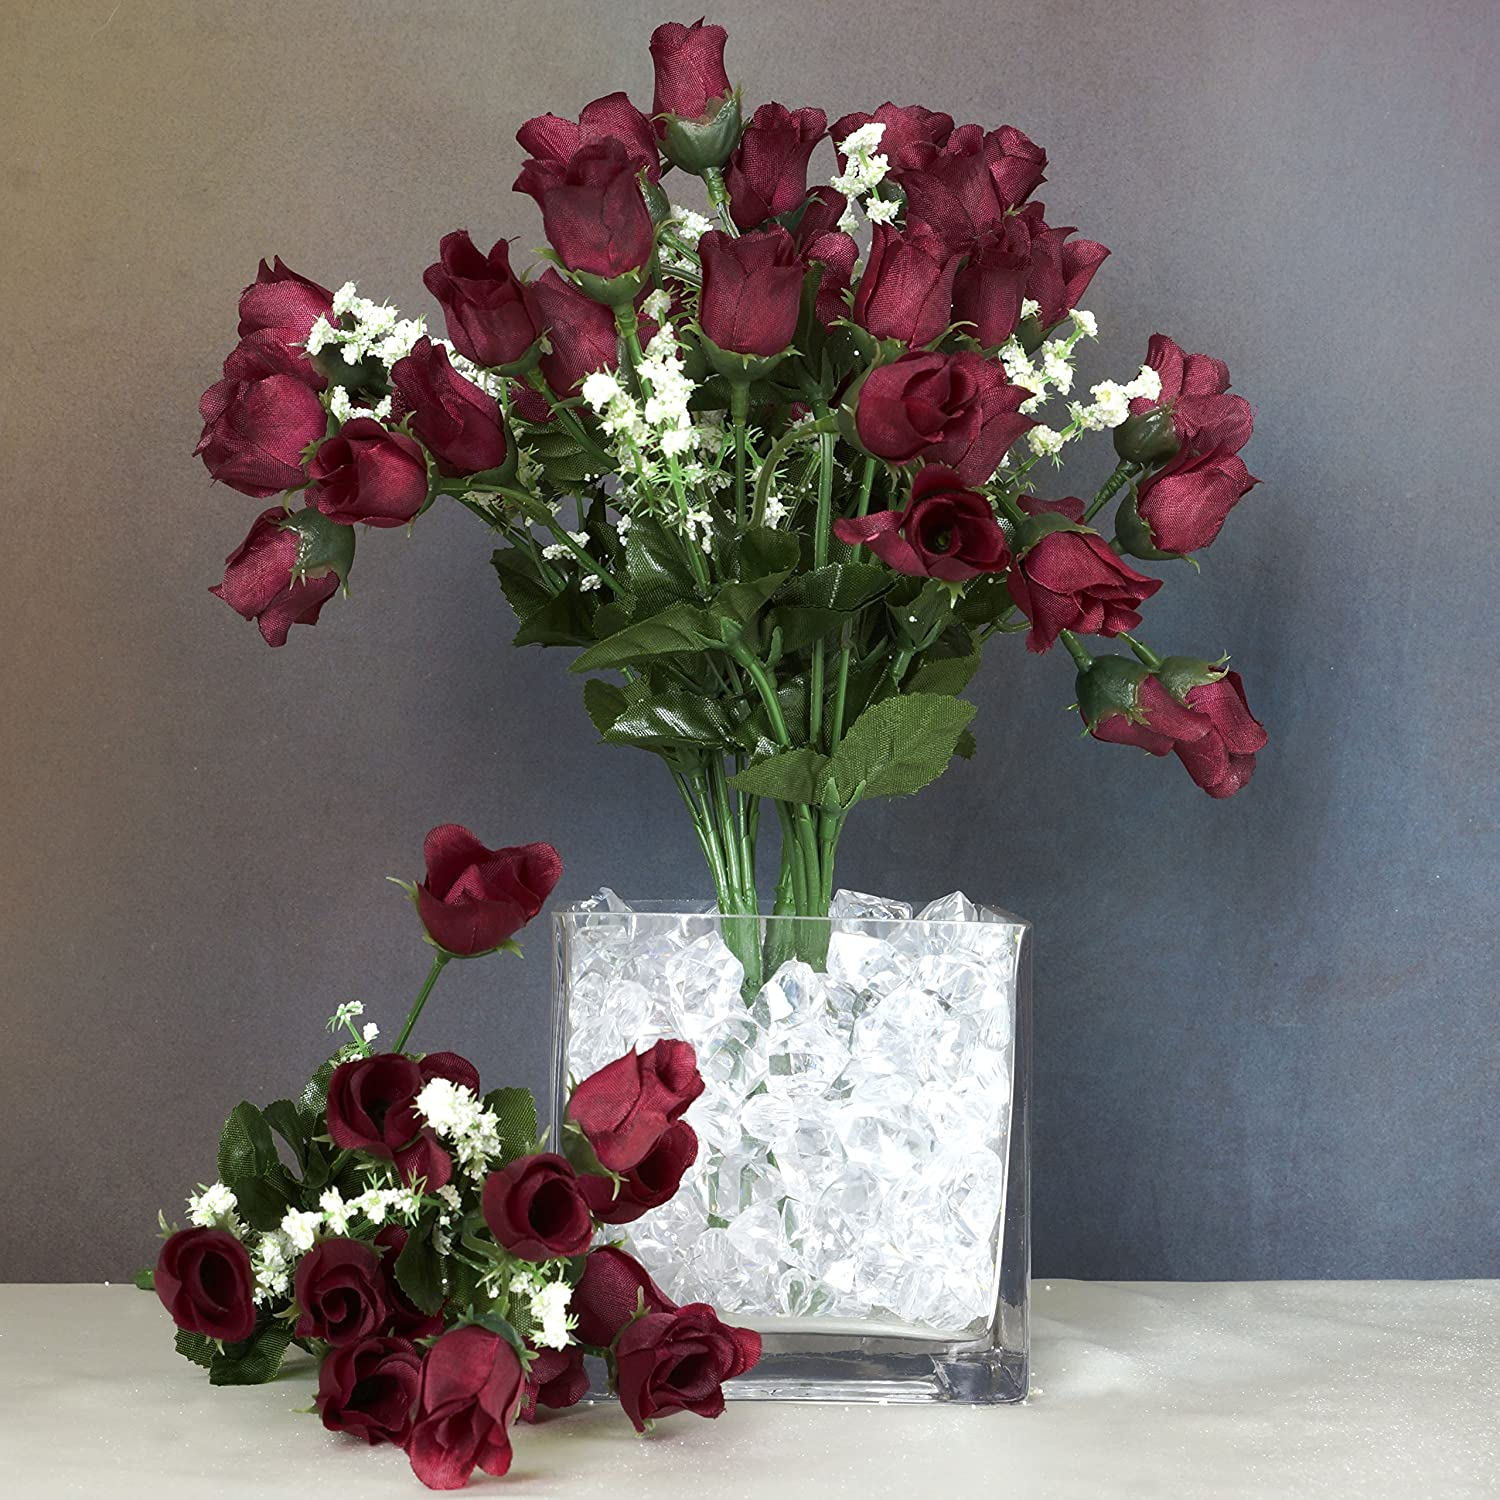 Amazon.com: BalsaCircle 180 Burgundy Mini Silk ROSES Buds - 12 ...